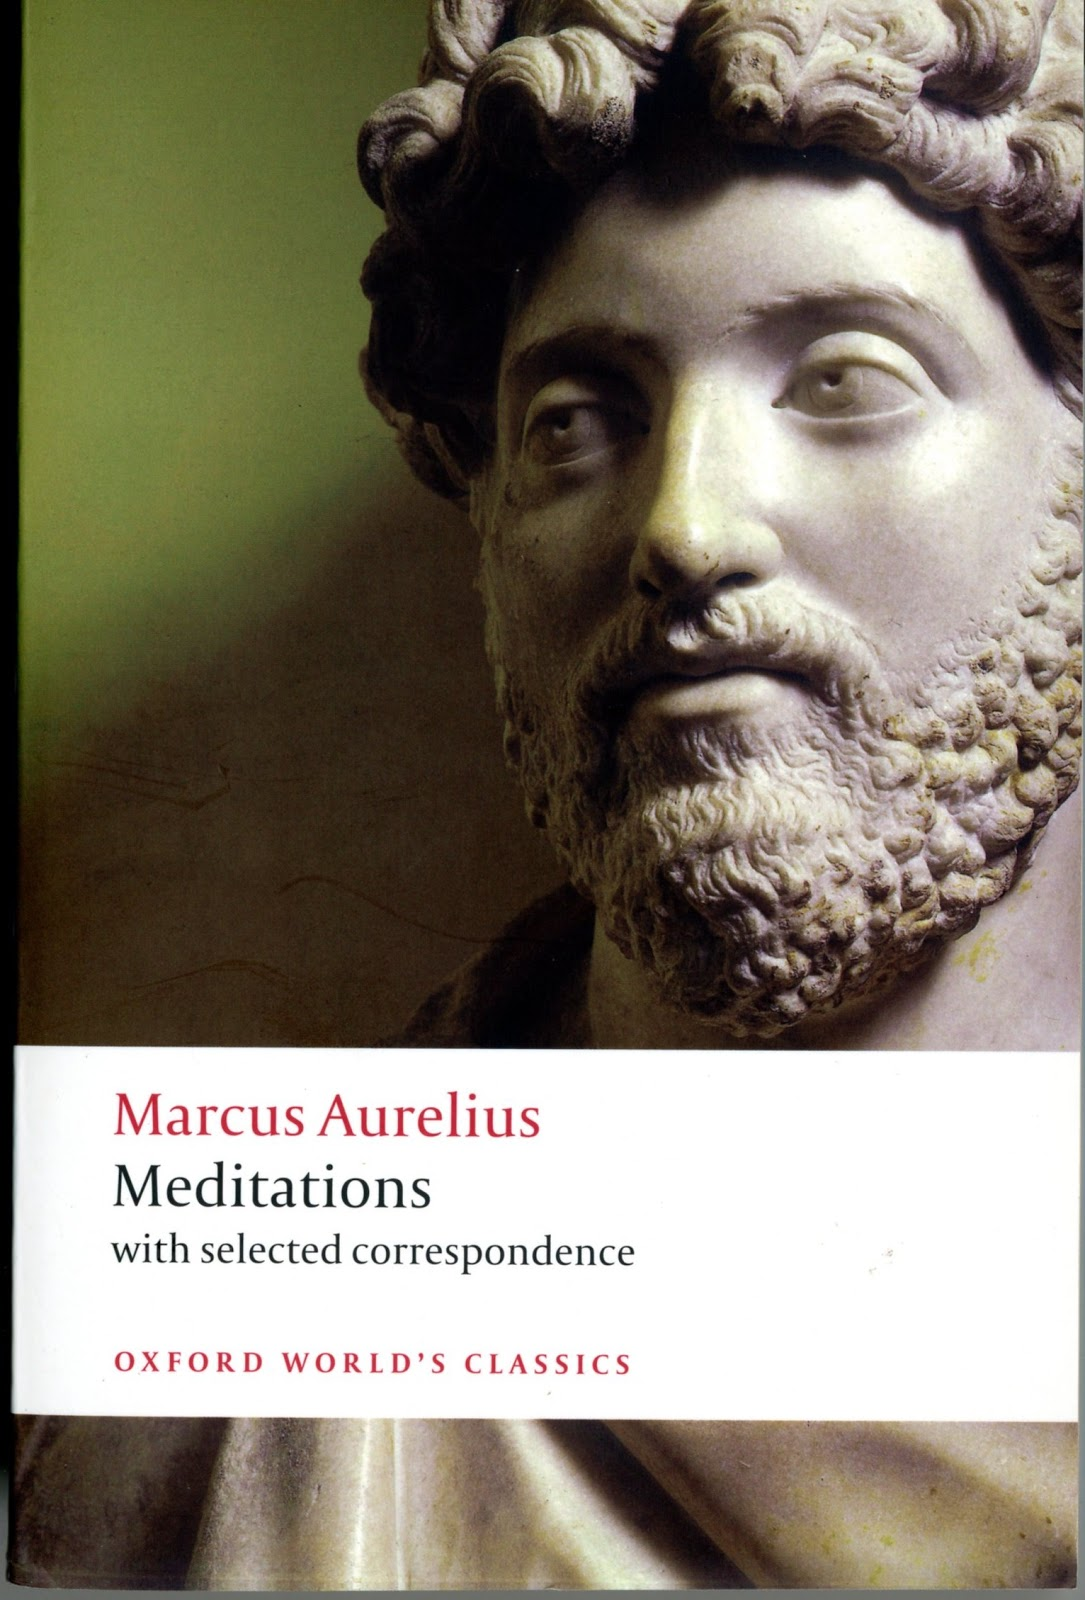 the significance of marcus aurelius meditations 2015/11/4 marcus aurelius was a roman emperor who live in the second century ad, in a time where the roman empire was experiencing turbulent times of war, unrest and natural disasters aurelius wrote his own personal reflections on life called 'meditations.